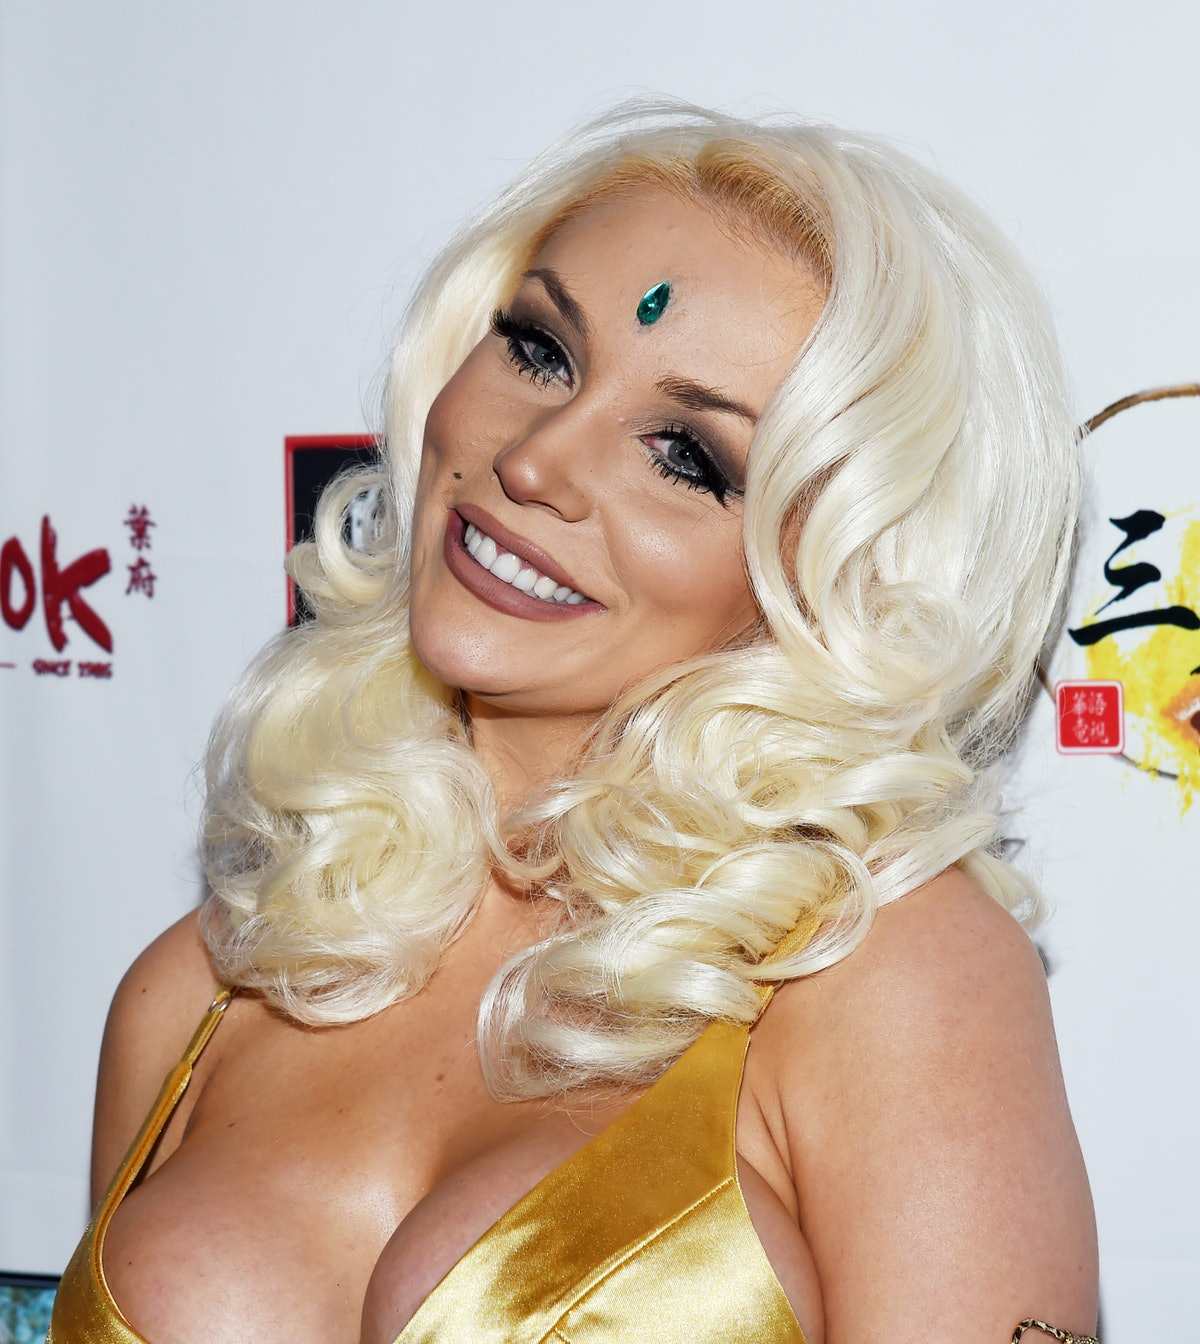 HOLLYWOOD, CALIFORNIA - FEBRUARY 09: Television personality Courtney Stodden attends the 5th Annual Roger Neal and Maryanne Lai Oscar Viewing Dinner-Icon Awards and After Party at The Hollywood Museum on February 09, 2020 in Hollywood, California. (Photo by Amanda Edwards/Getty Images)